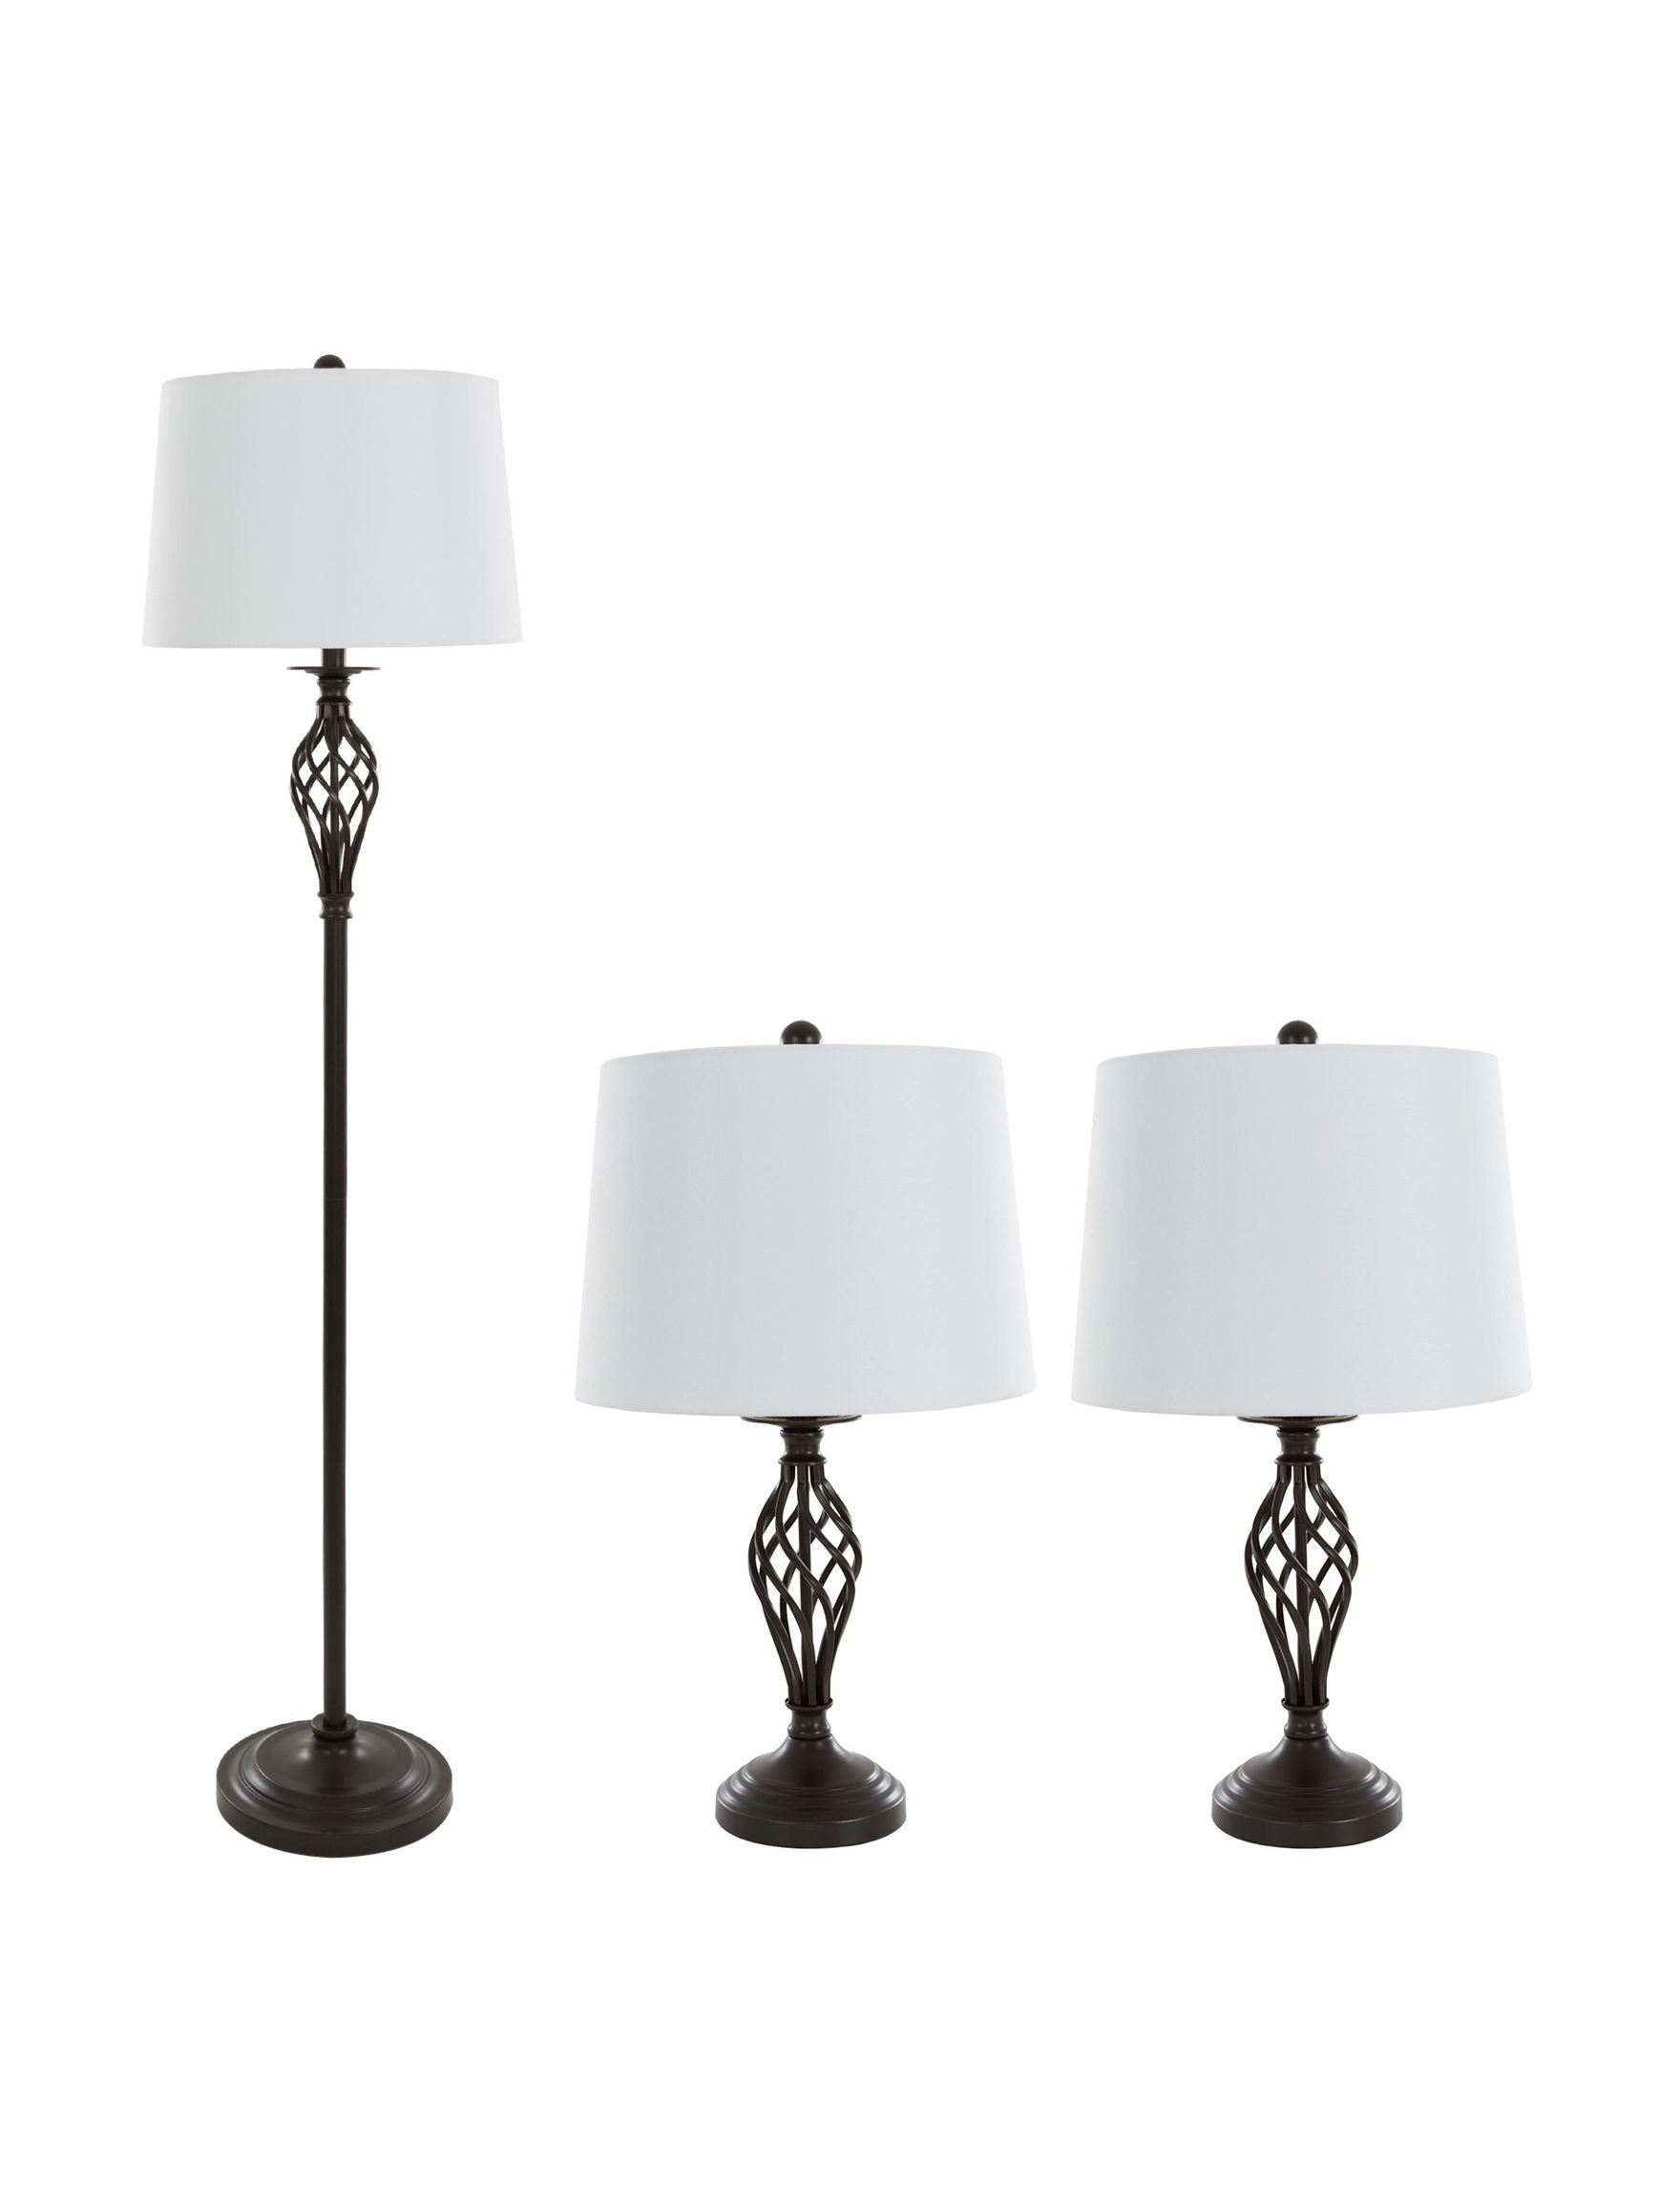 Lavish Home Bronze Floor Lamps Table Lamps Lighting & Lamps